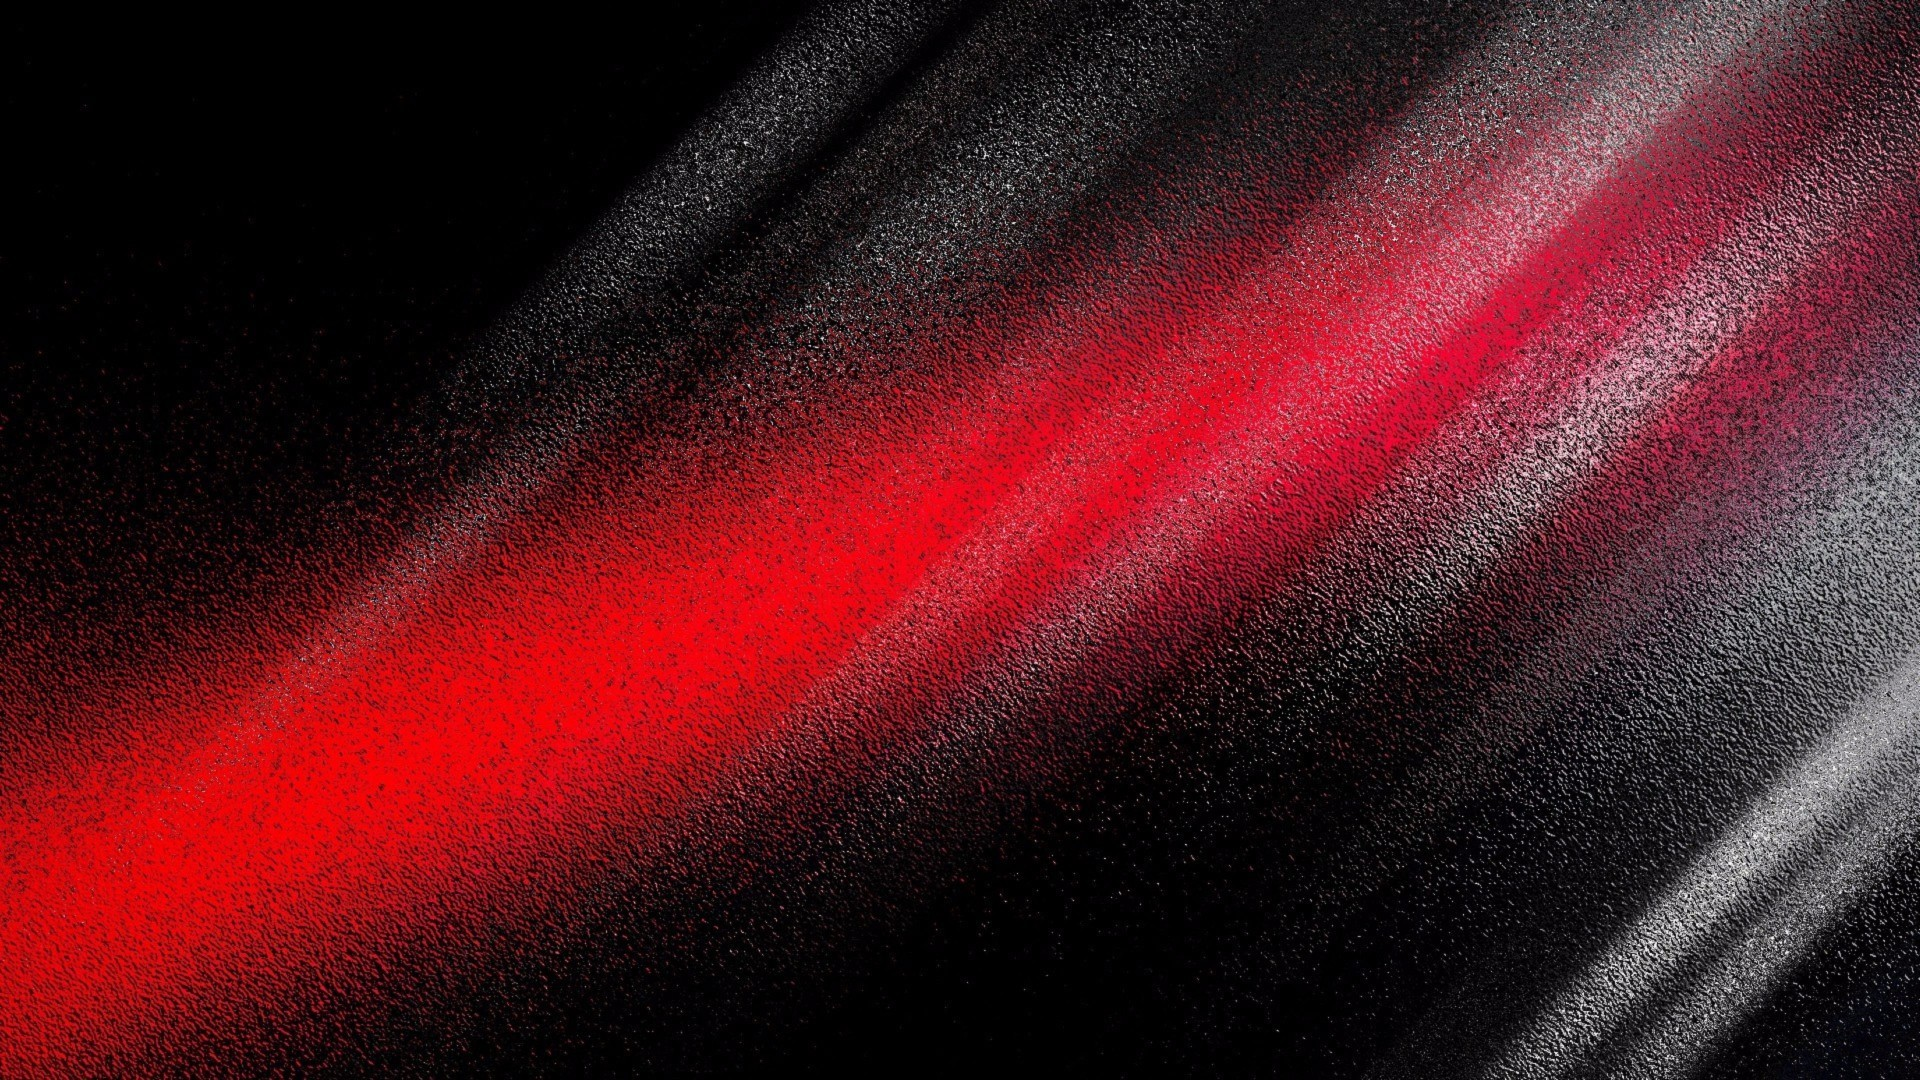 Red And Black Abstract Backgrounds 62 Pictures